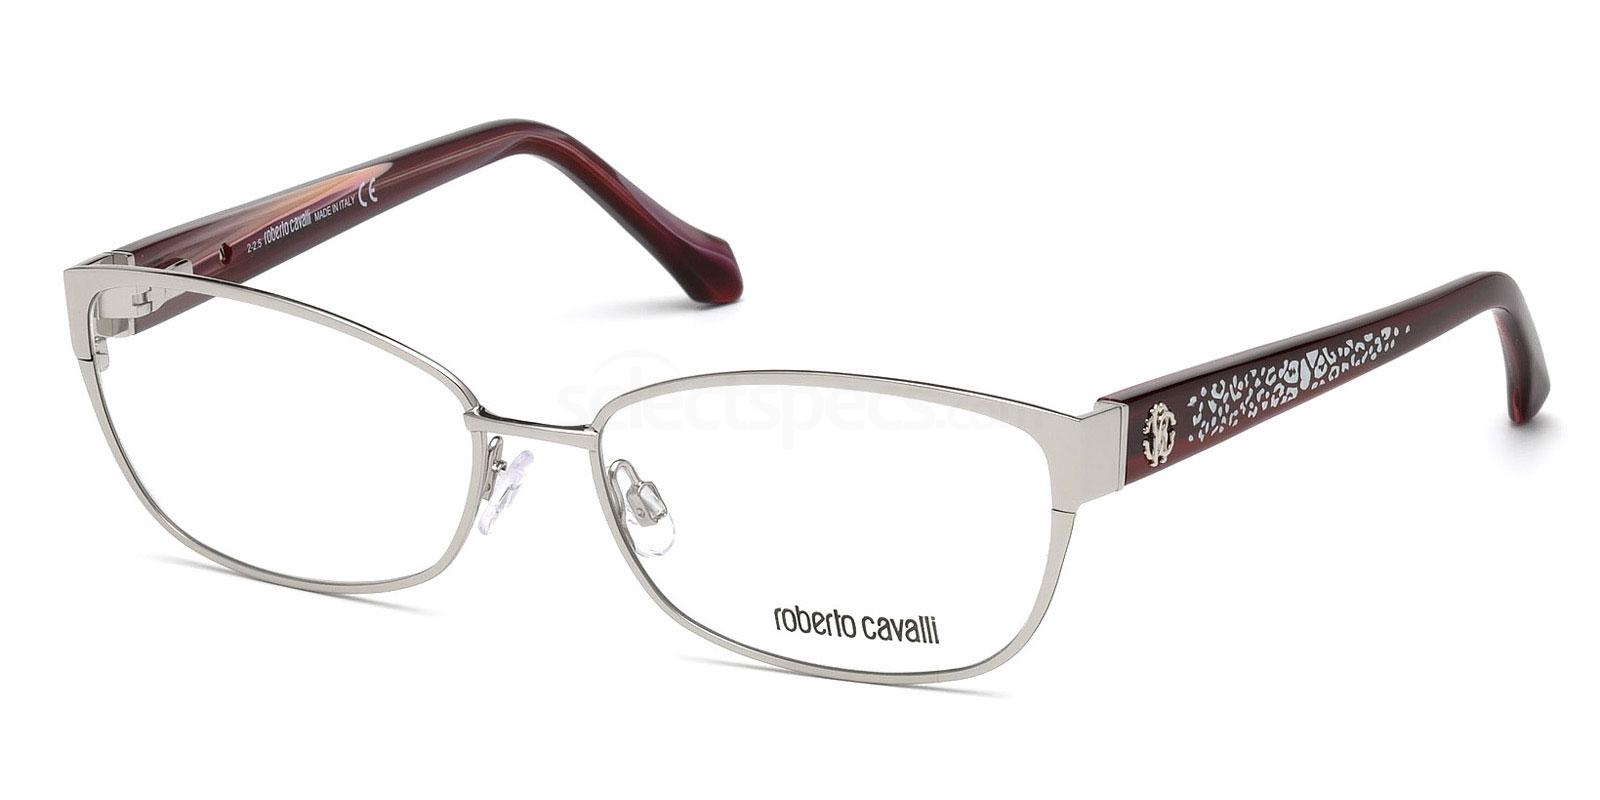 016 RC5024 Glasses, Roberto Cavalli